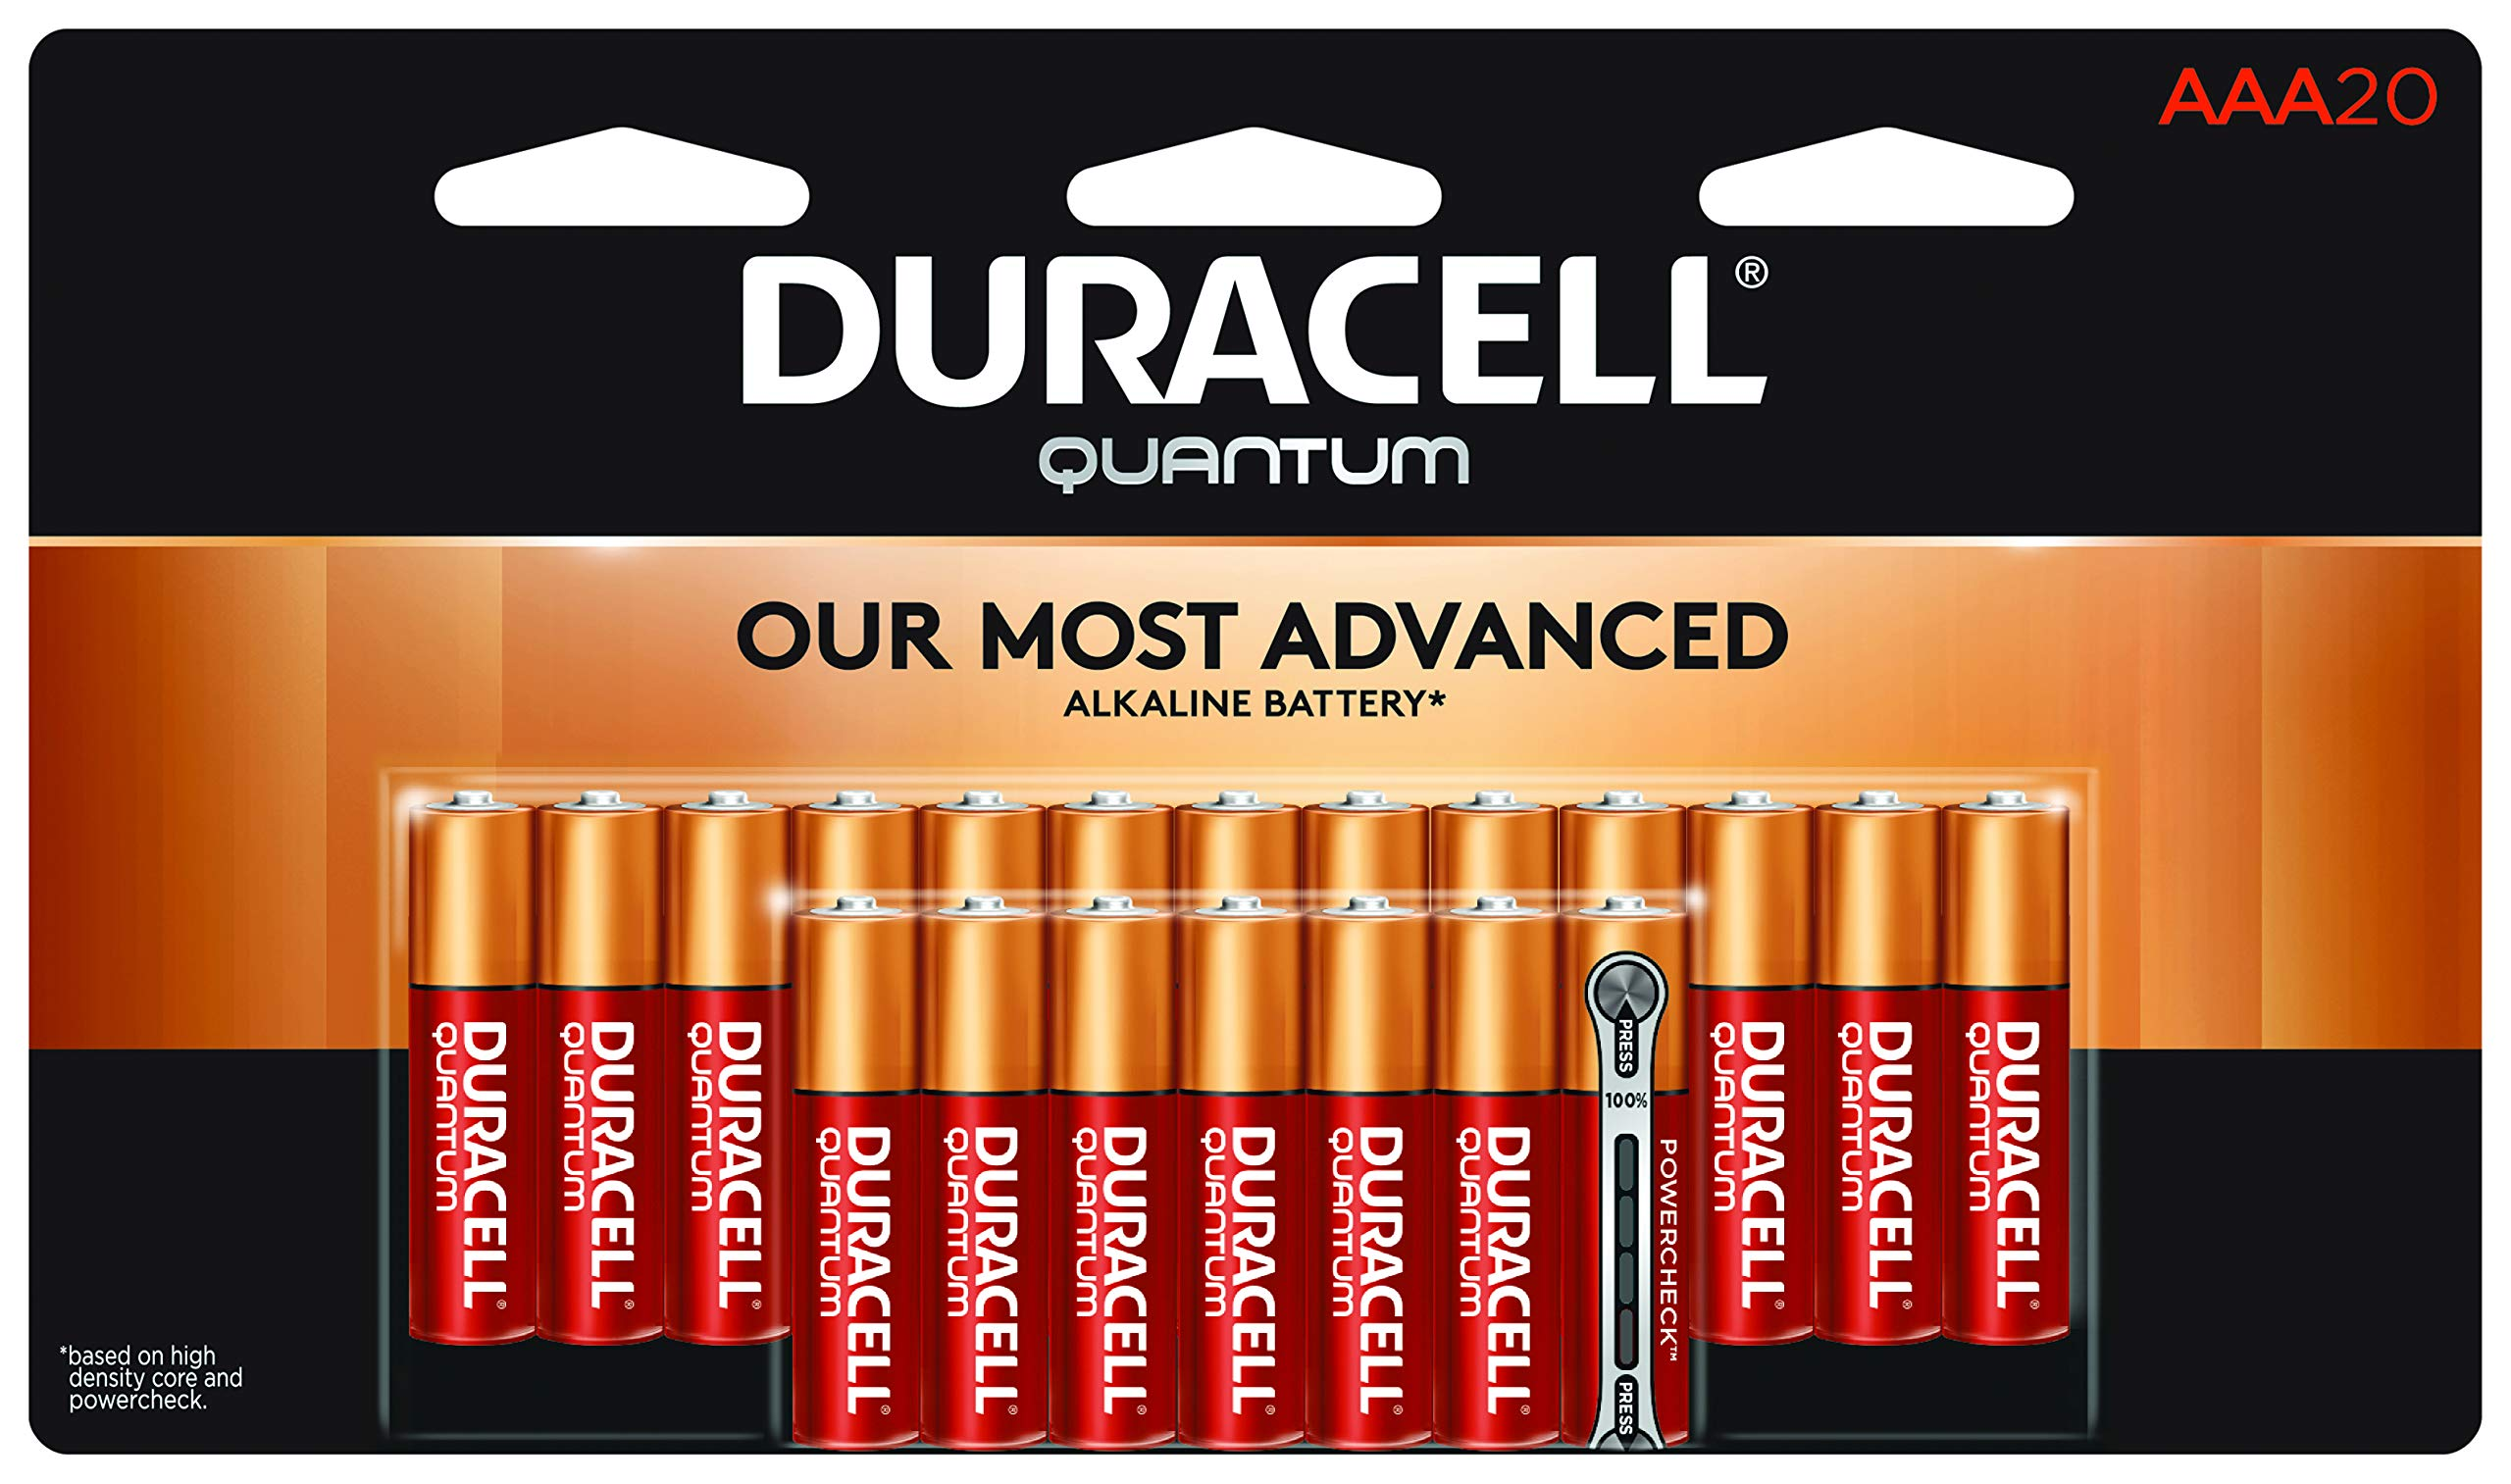 Duracell Quantum Alkaline Batteries, AAA 20 pack by Duracell